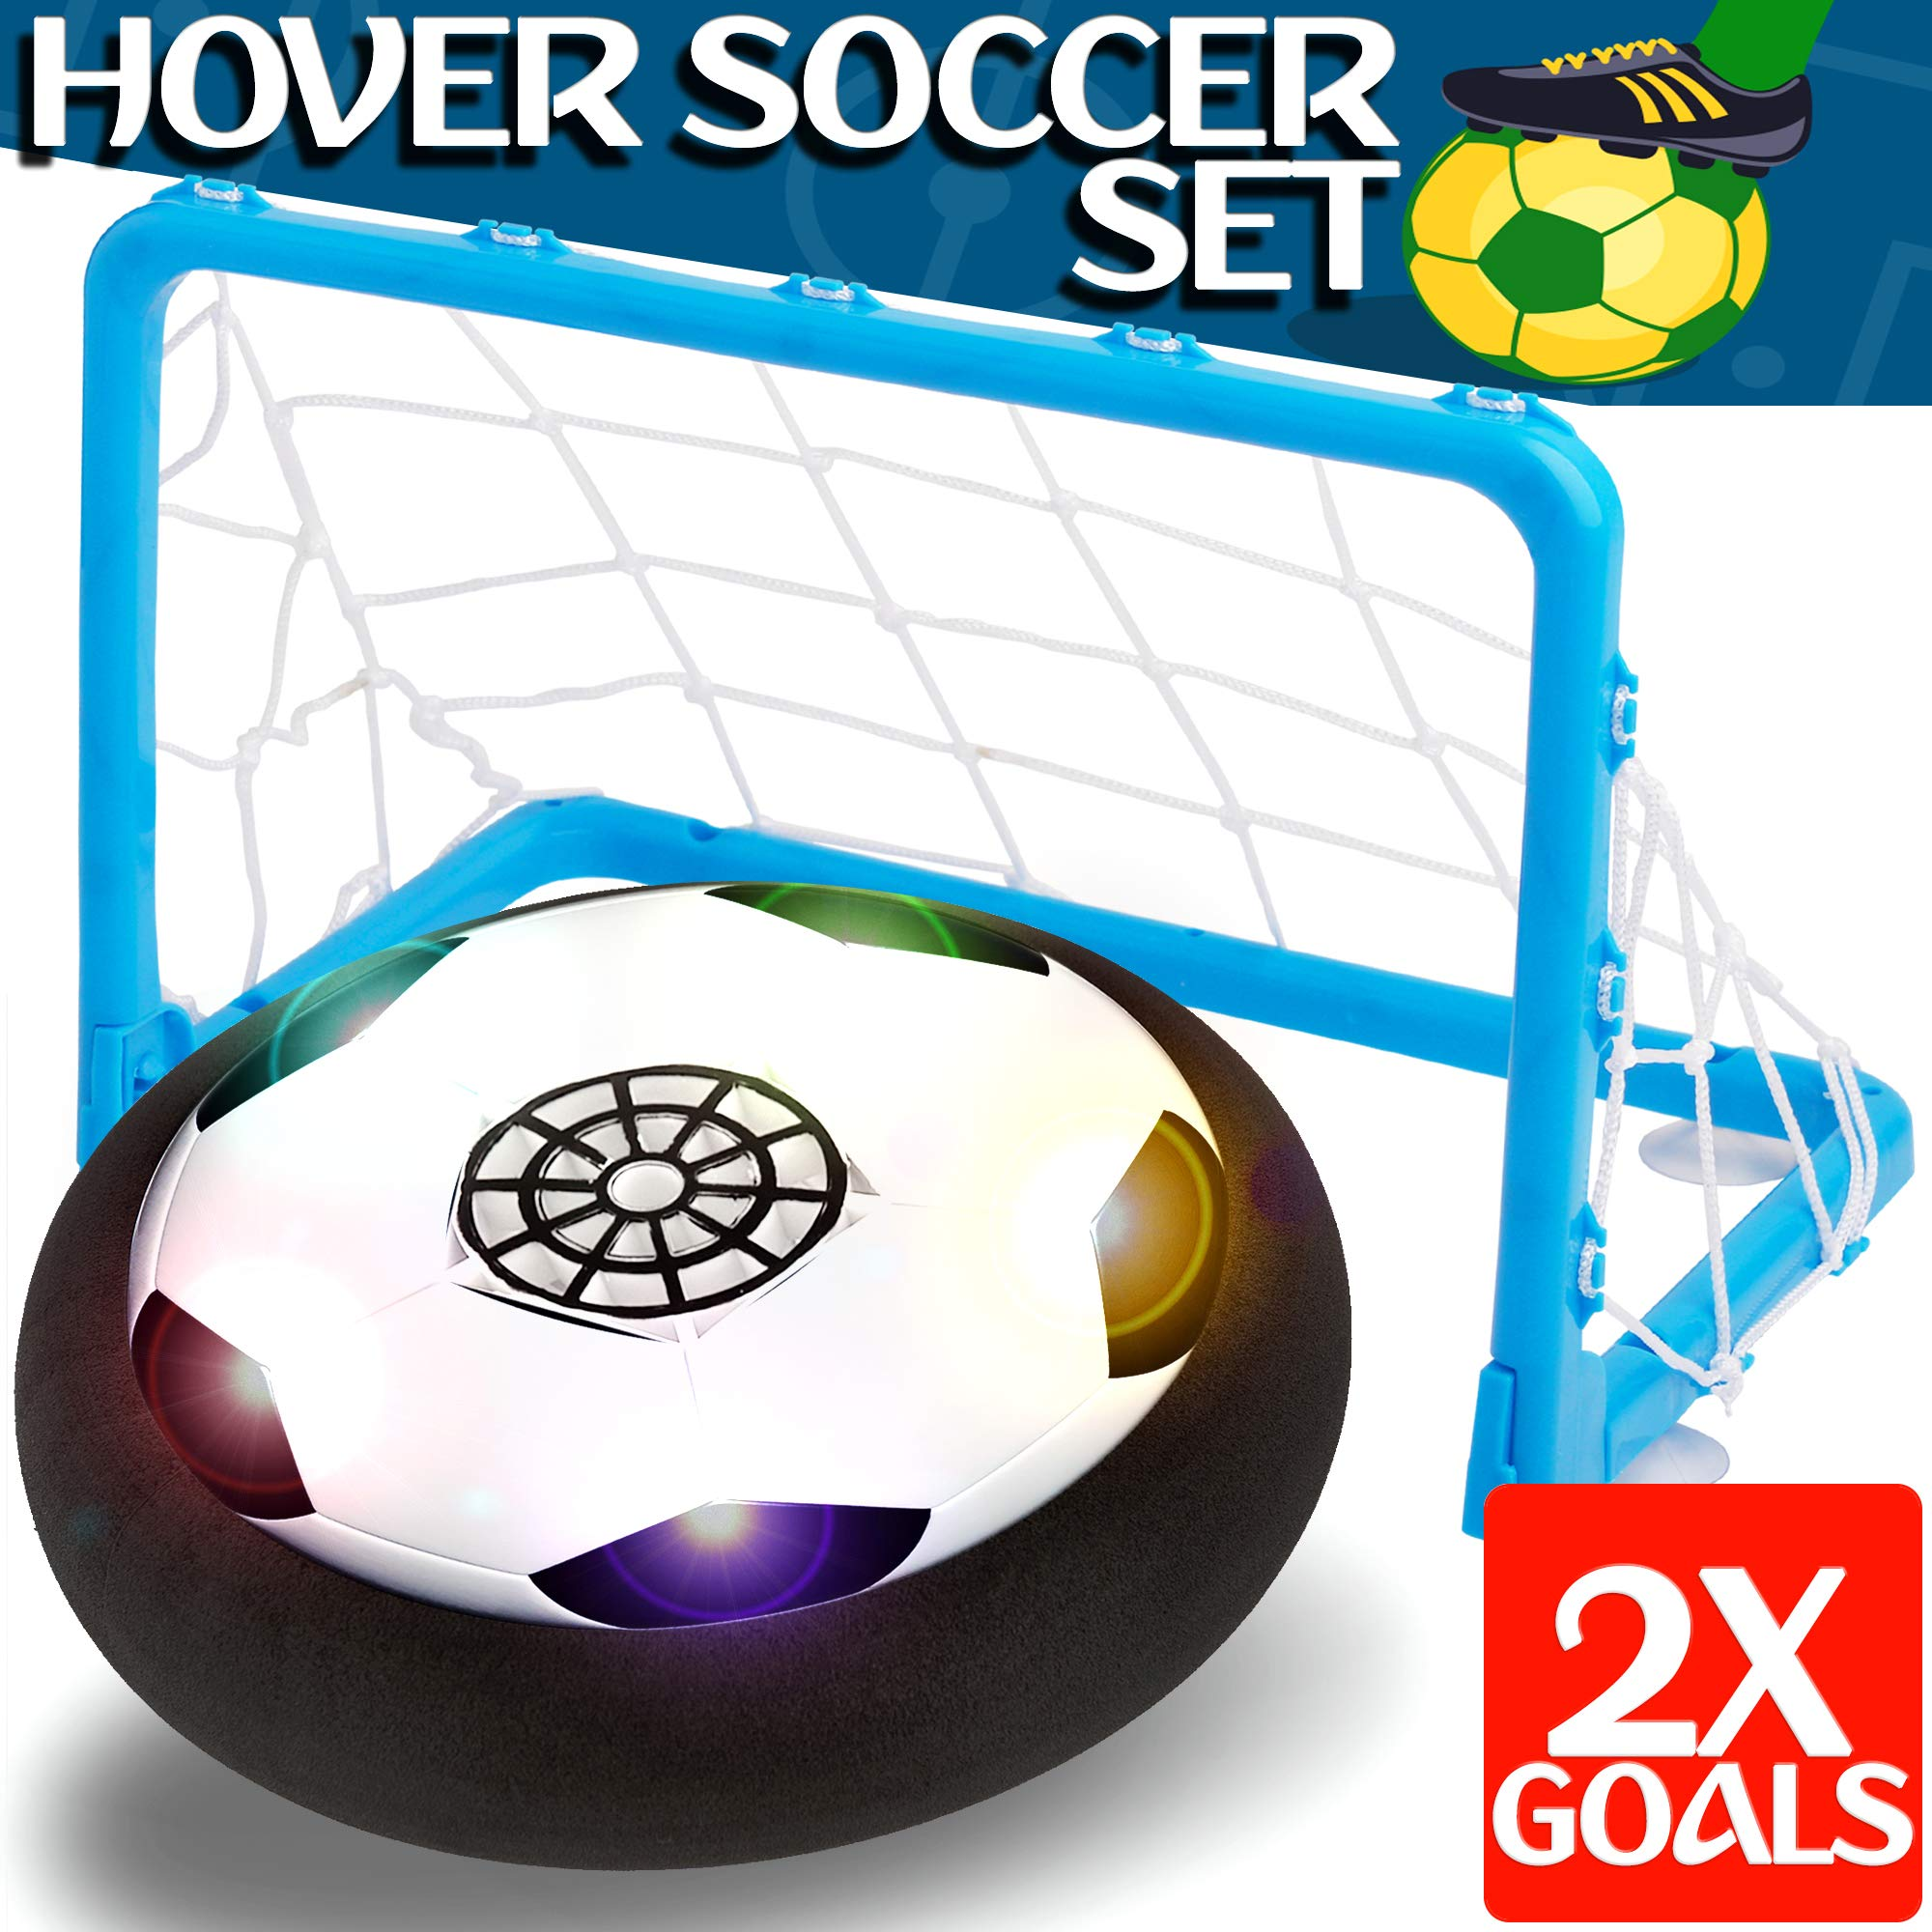 Kids Toys - Hover Soccer Ball Set with 2 Goal, Toy for Boys / Girls Age of 2, 3, 4 -16 Year Old, Top Indoor / Outdoor Children Sports Games Gifts by BOY-S-YEAR